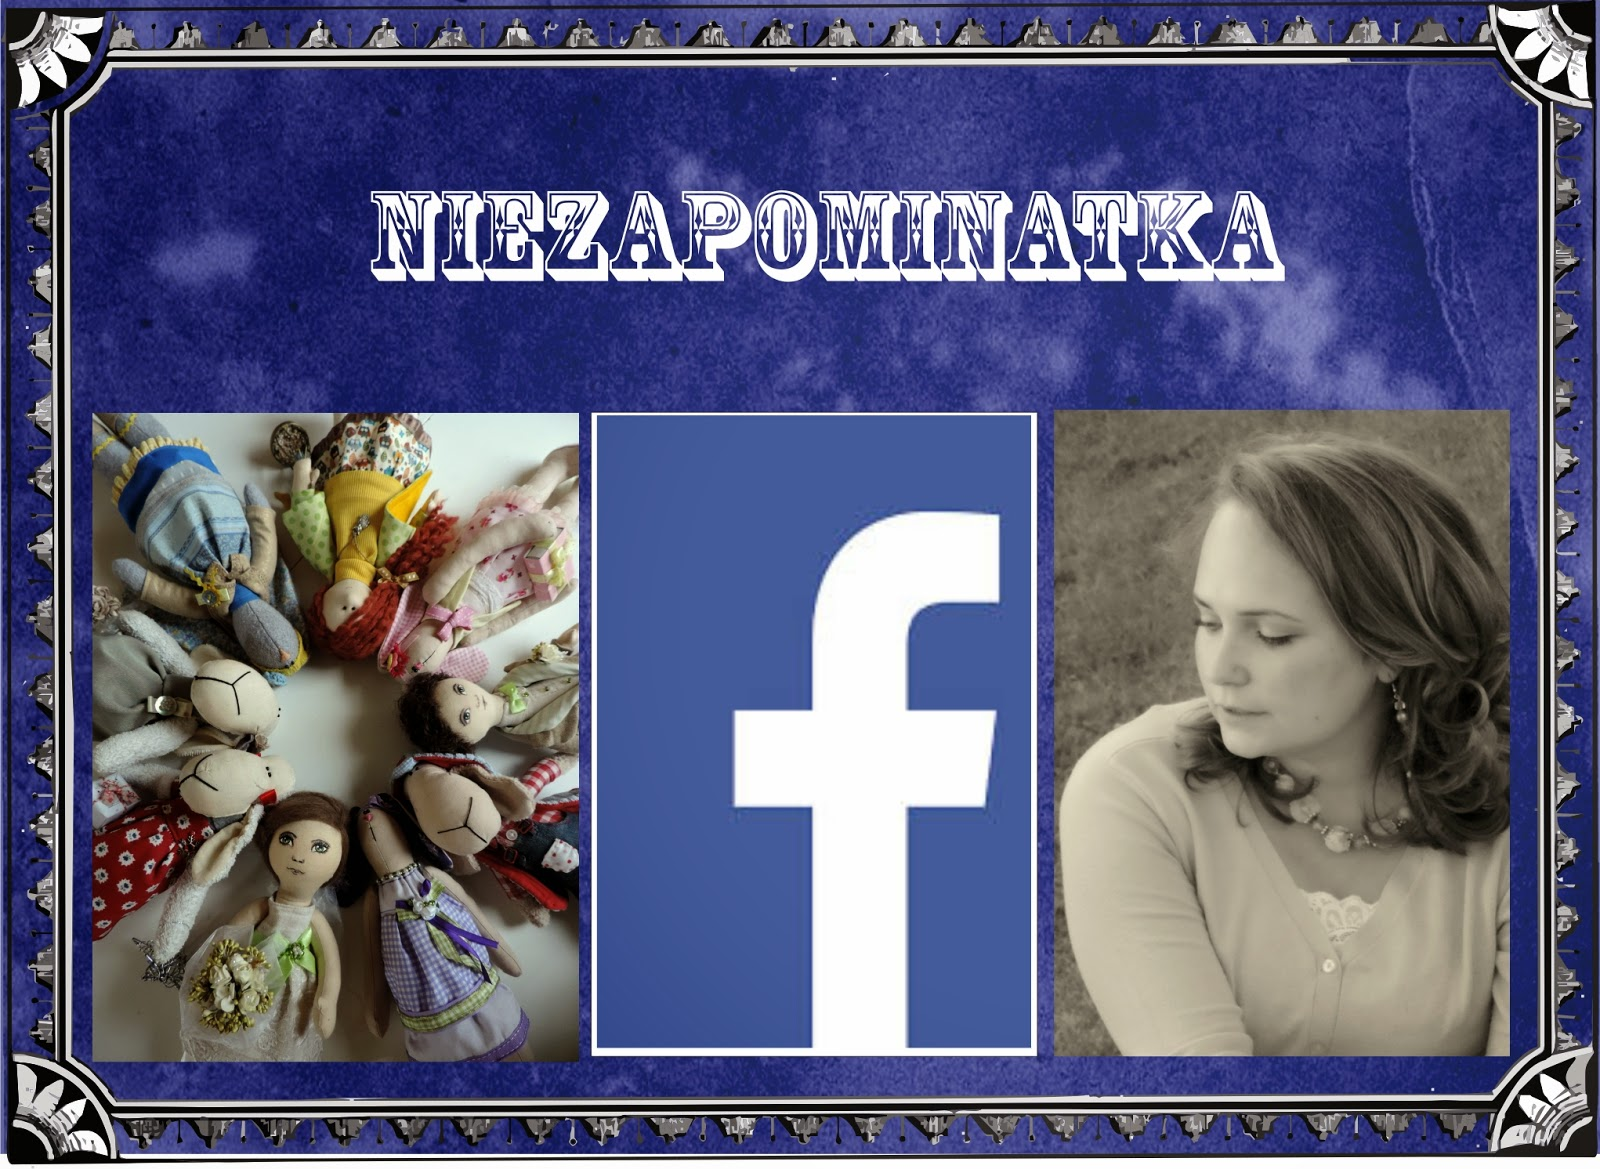 https://www.facebook.com/pages/Niezapominatka-ATKA/335661233254232